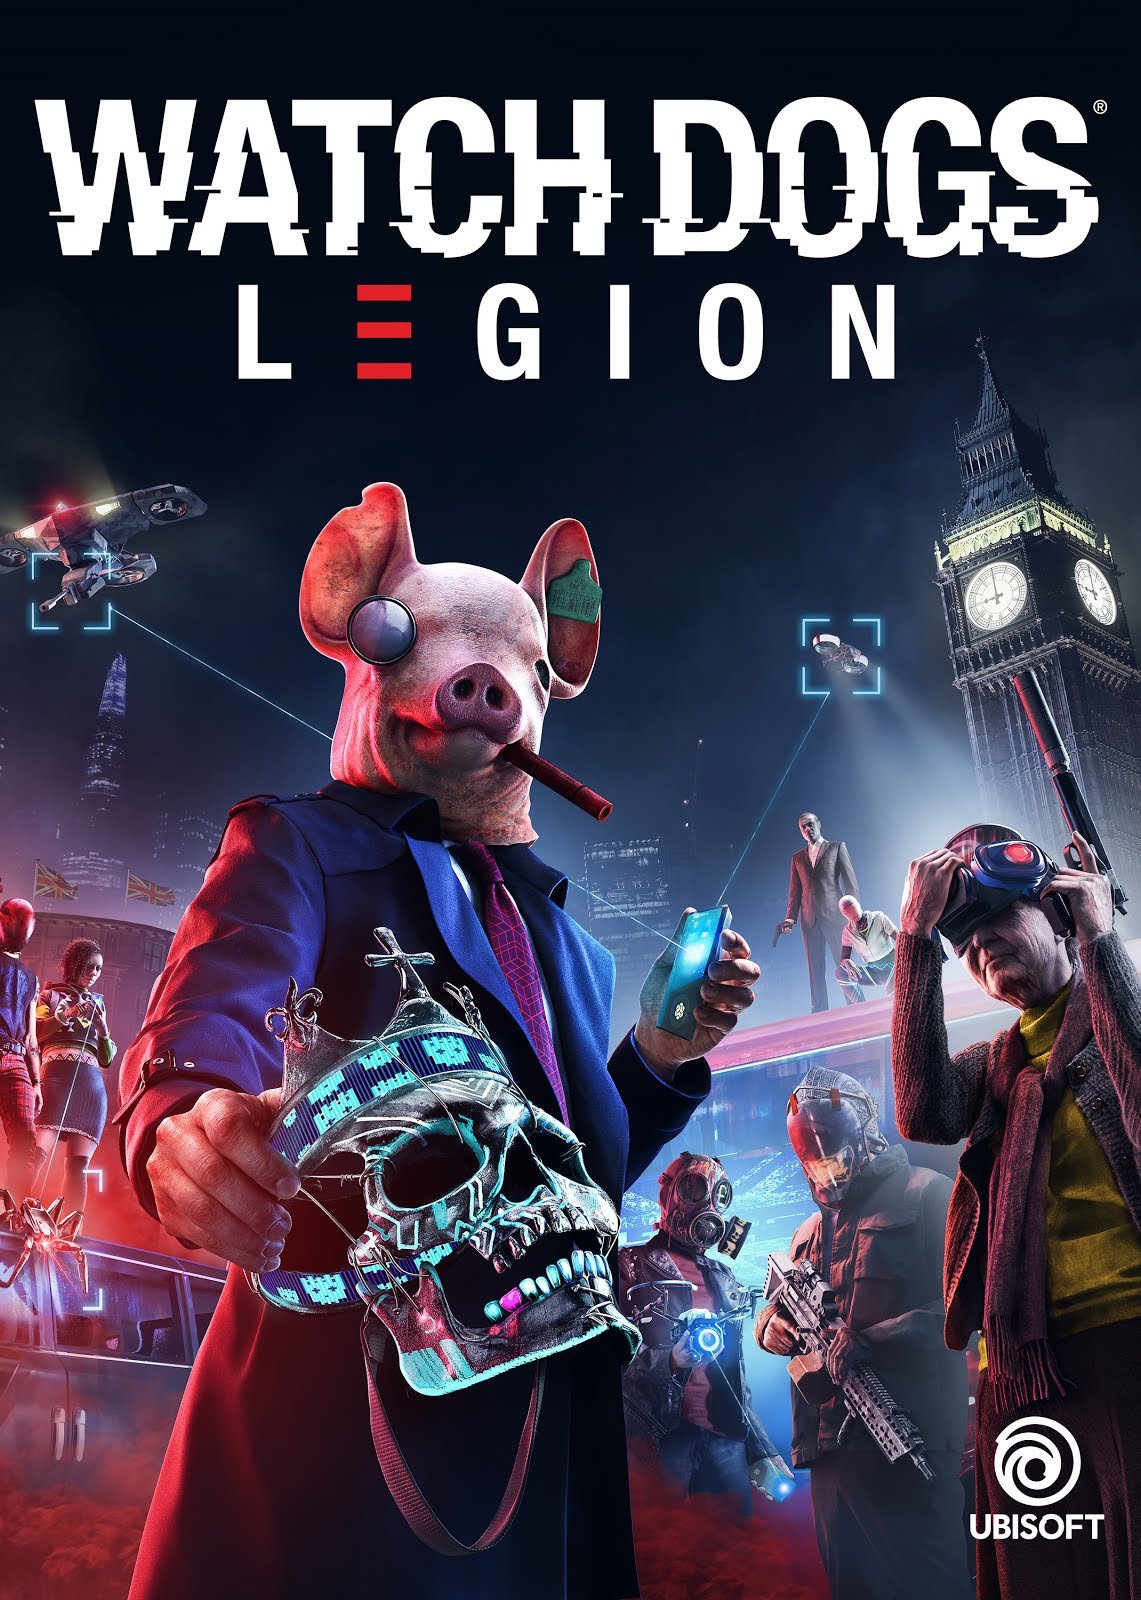 Watch Dog 2 Apk Obb Download - Watch Dogs 2 PC Requirements